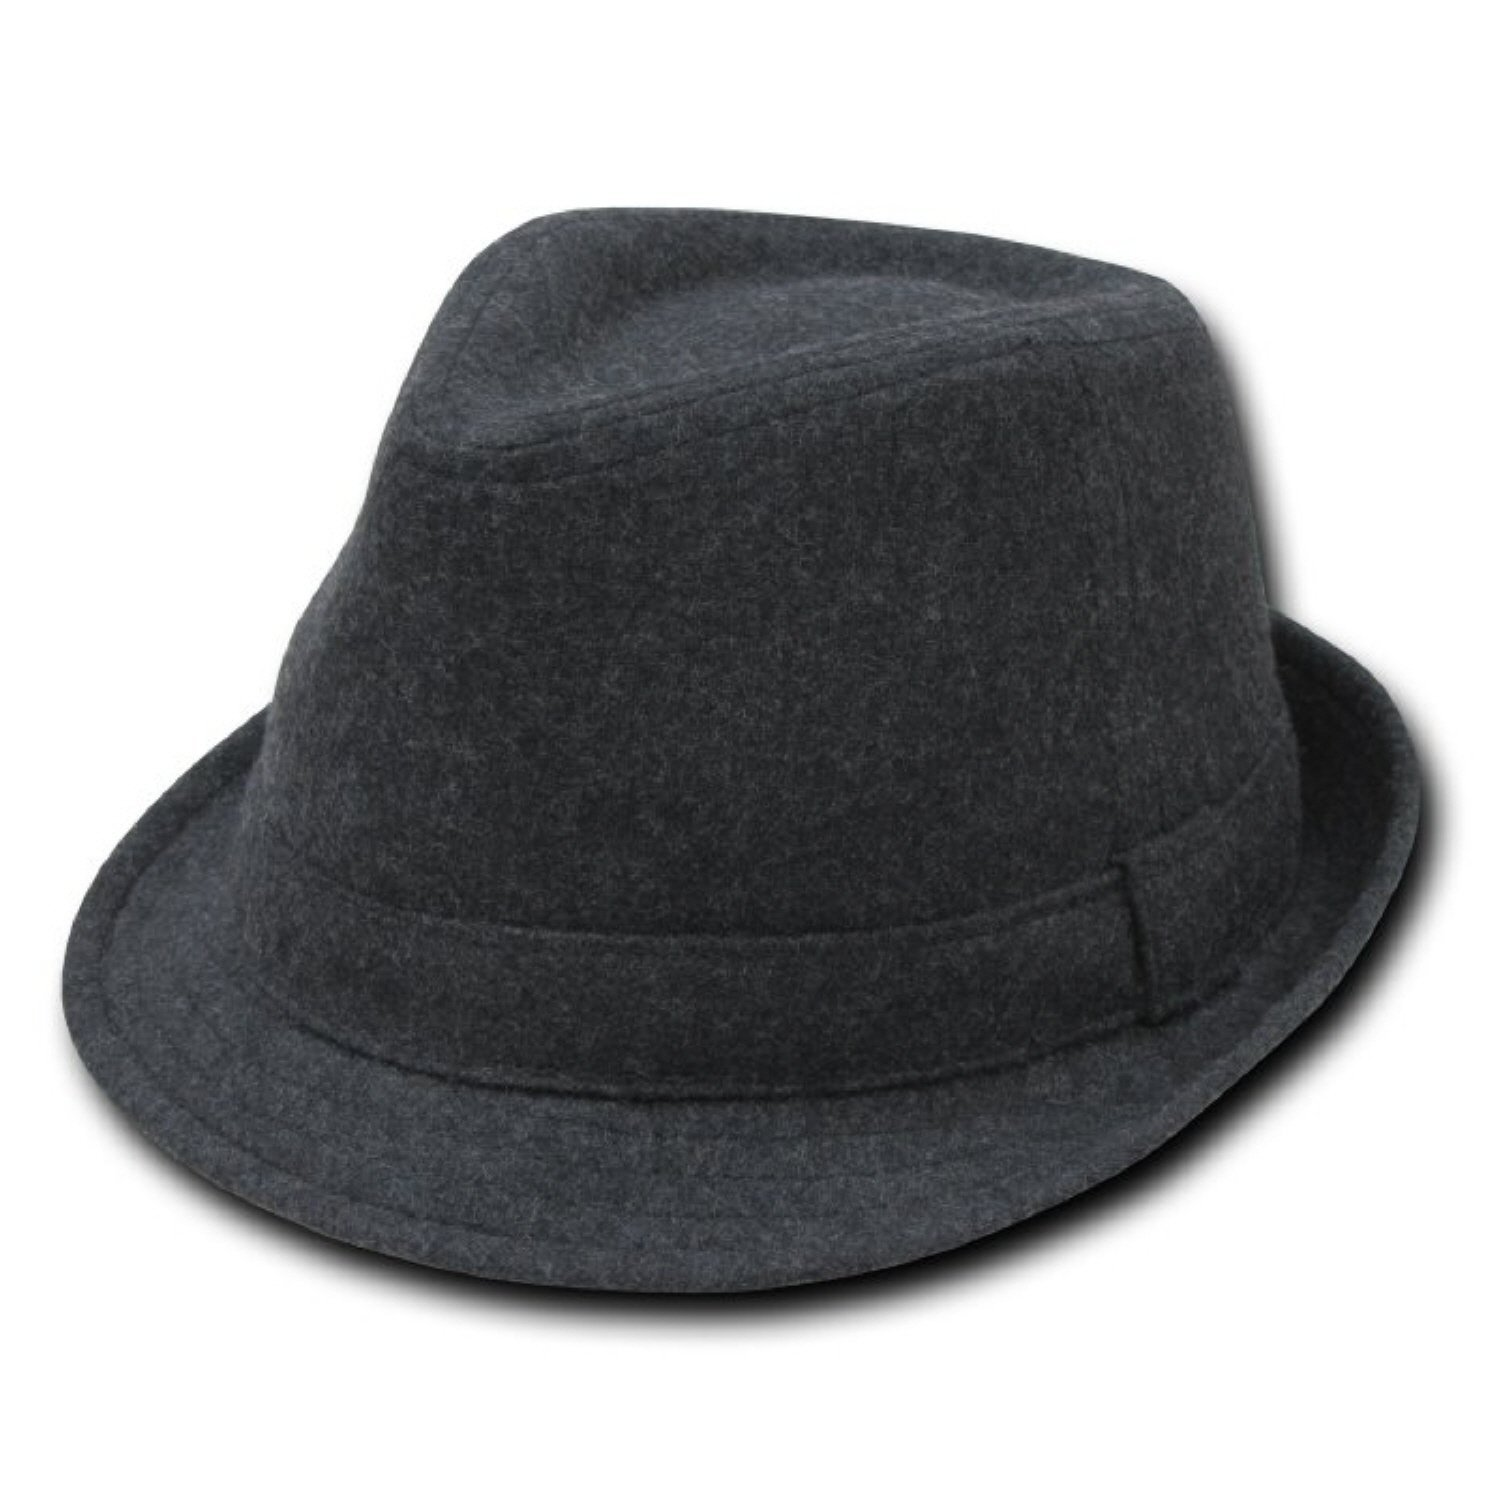 Decky Melton Wool Fedora Hat Charcoal Grey (Small/Medium)